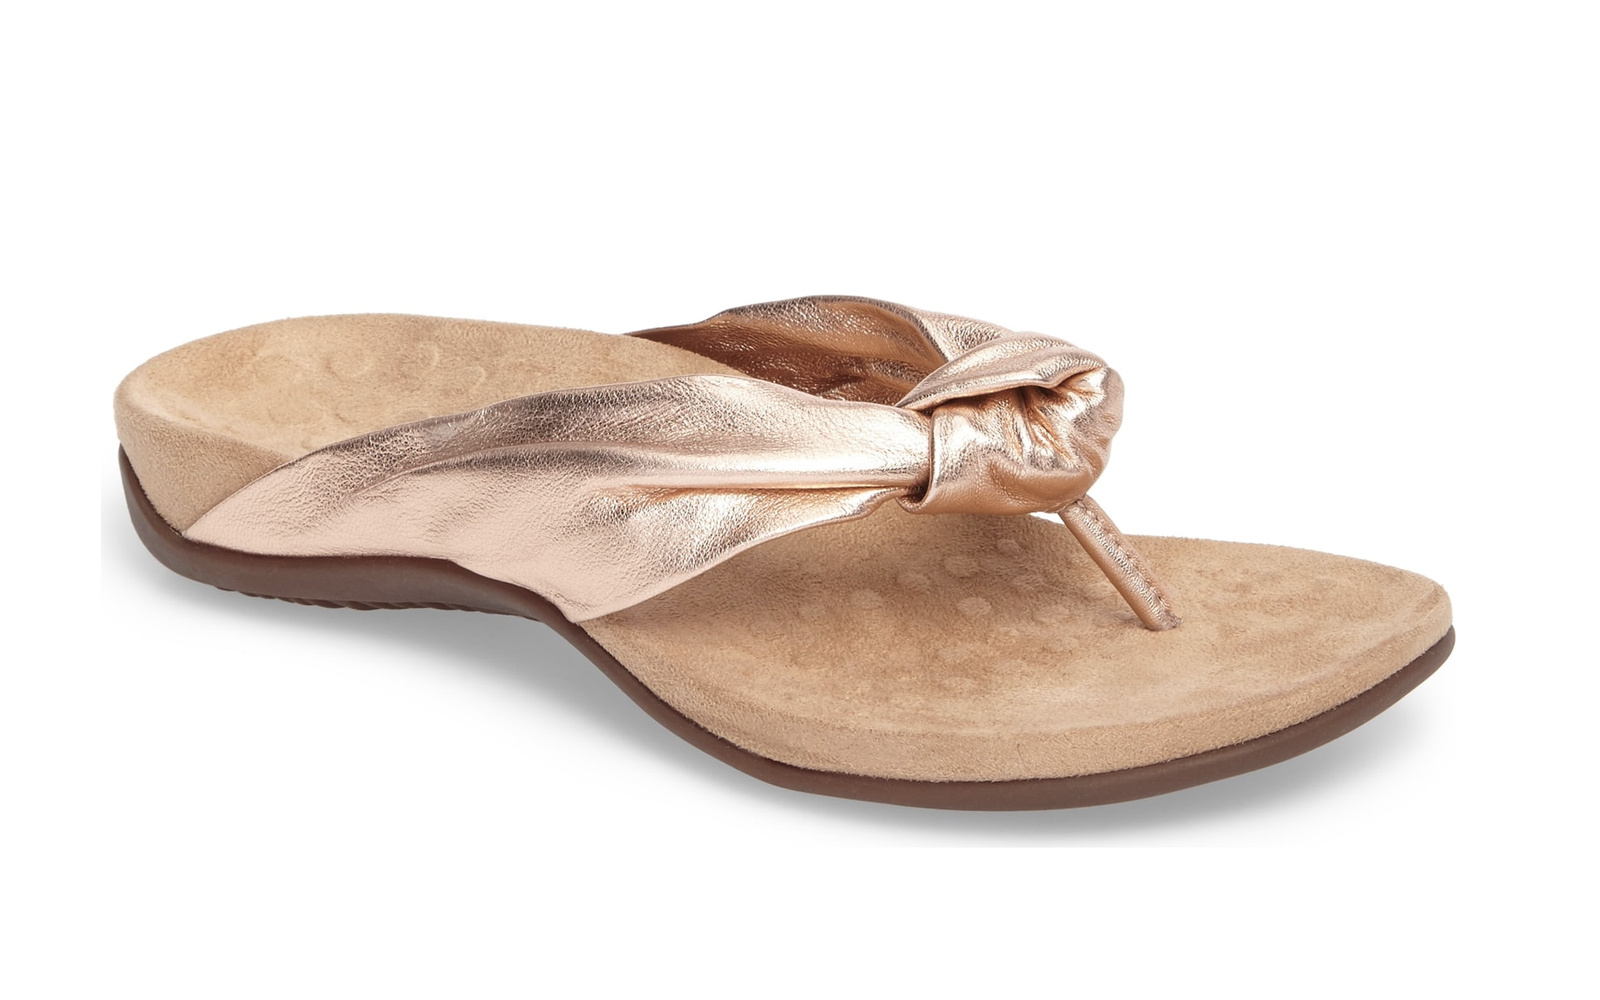 Vionic 'Pippa' Flip Flop in Rose Gold